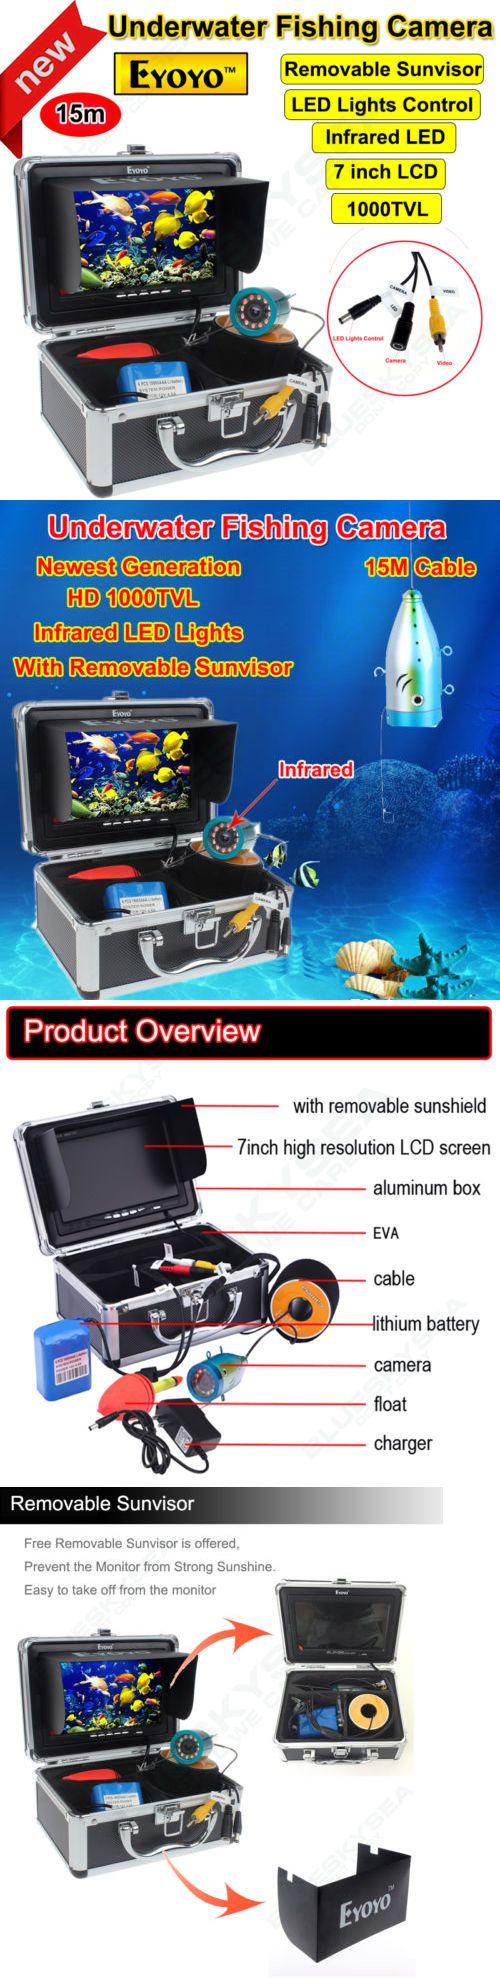 Underwater Cameras 180000: Eyoyo 7 Lcd 15M Infrared 1000Tvl Fish Finder Underwater Fishing Camera Monitor BUY IT NOW ONLY: $121.88